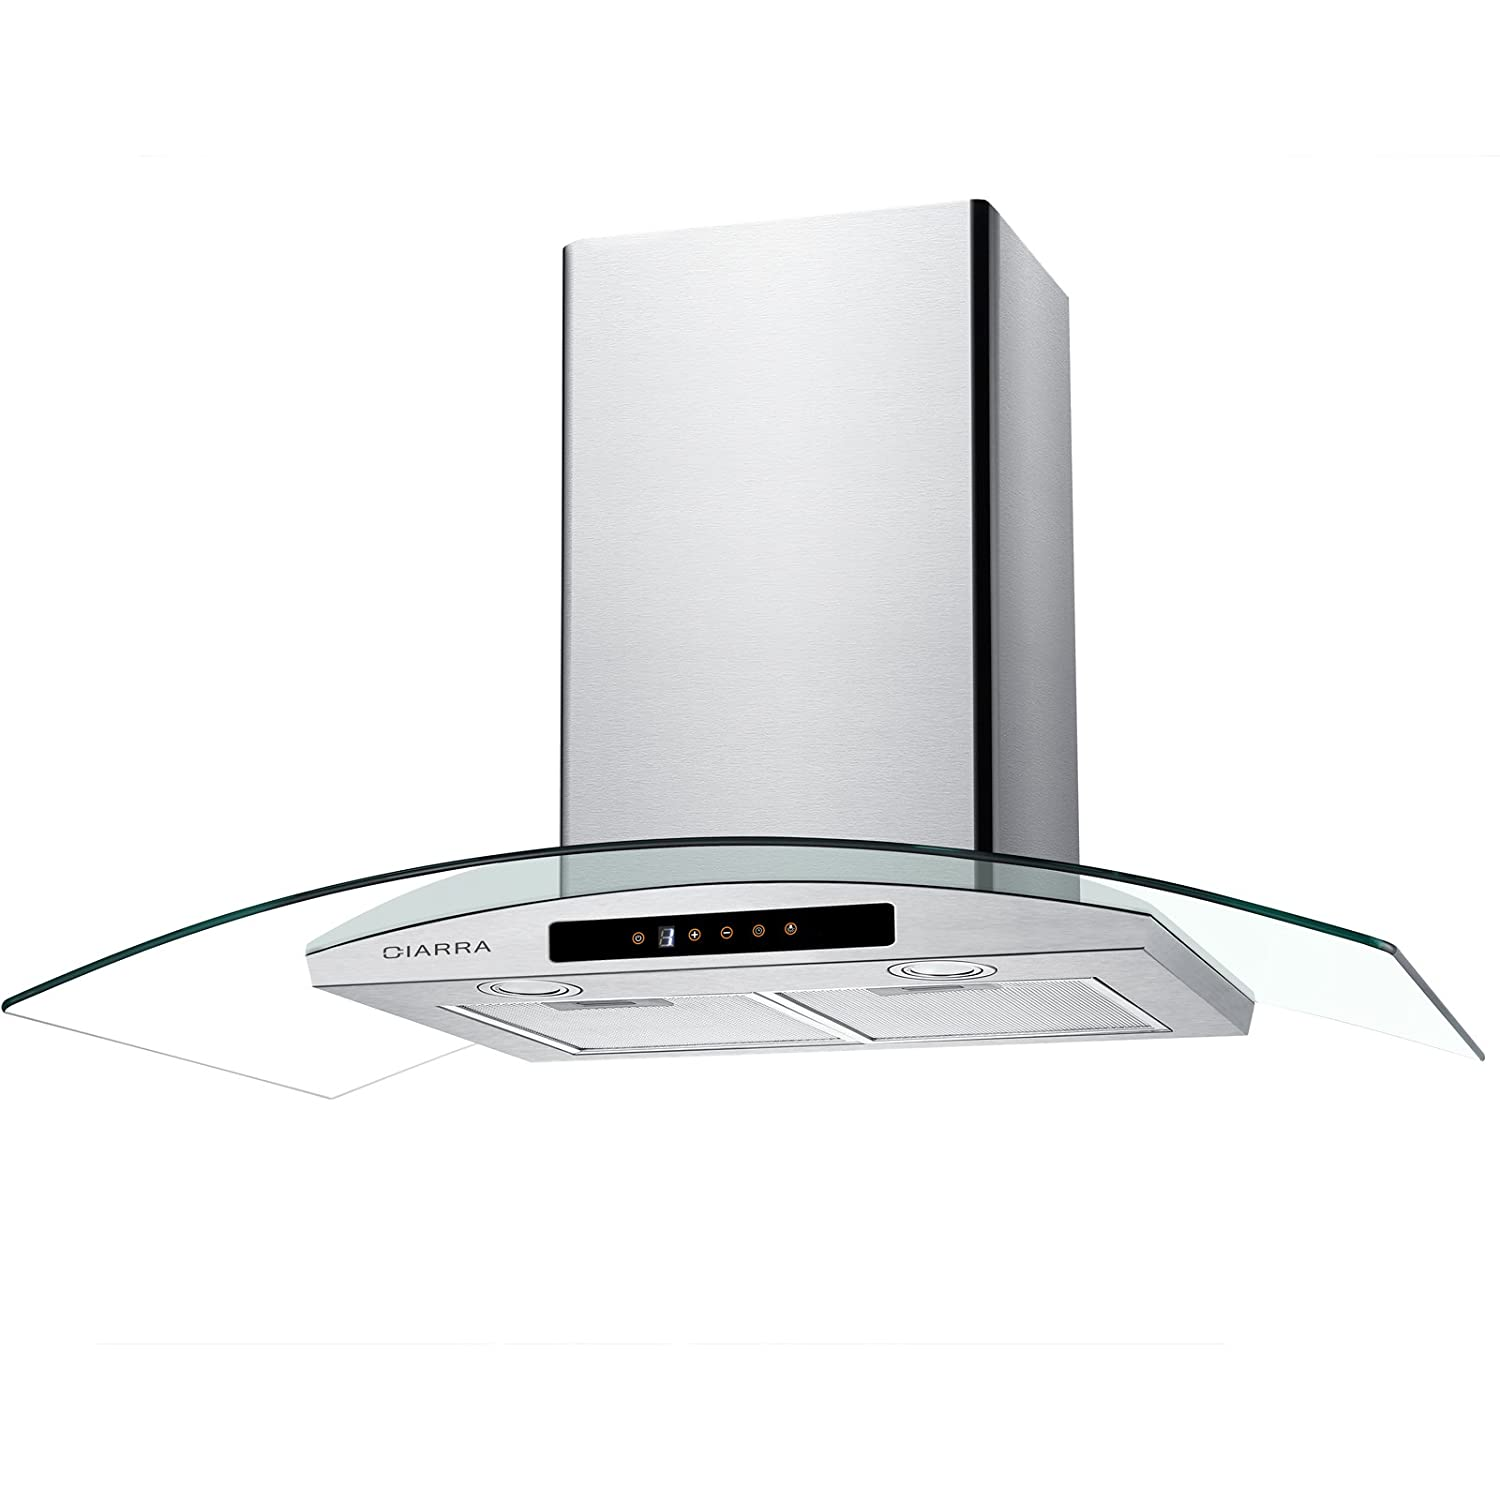 "CIARRA 30"" Wall Mount Range Hood Touch Control,LED Lights,3 Speeds,450 CFM,Tempered Glass,Stainless Steel,Washable Filters,Kitchen Cooking Vent Fan Hoods"